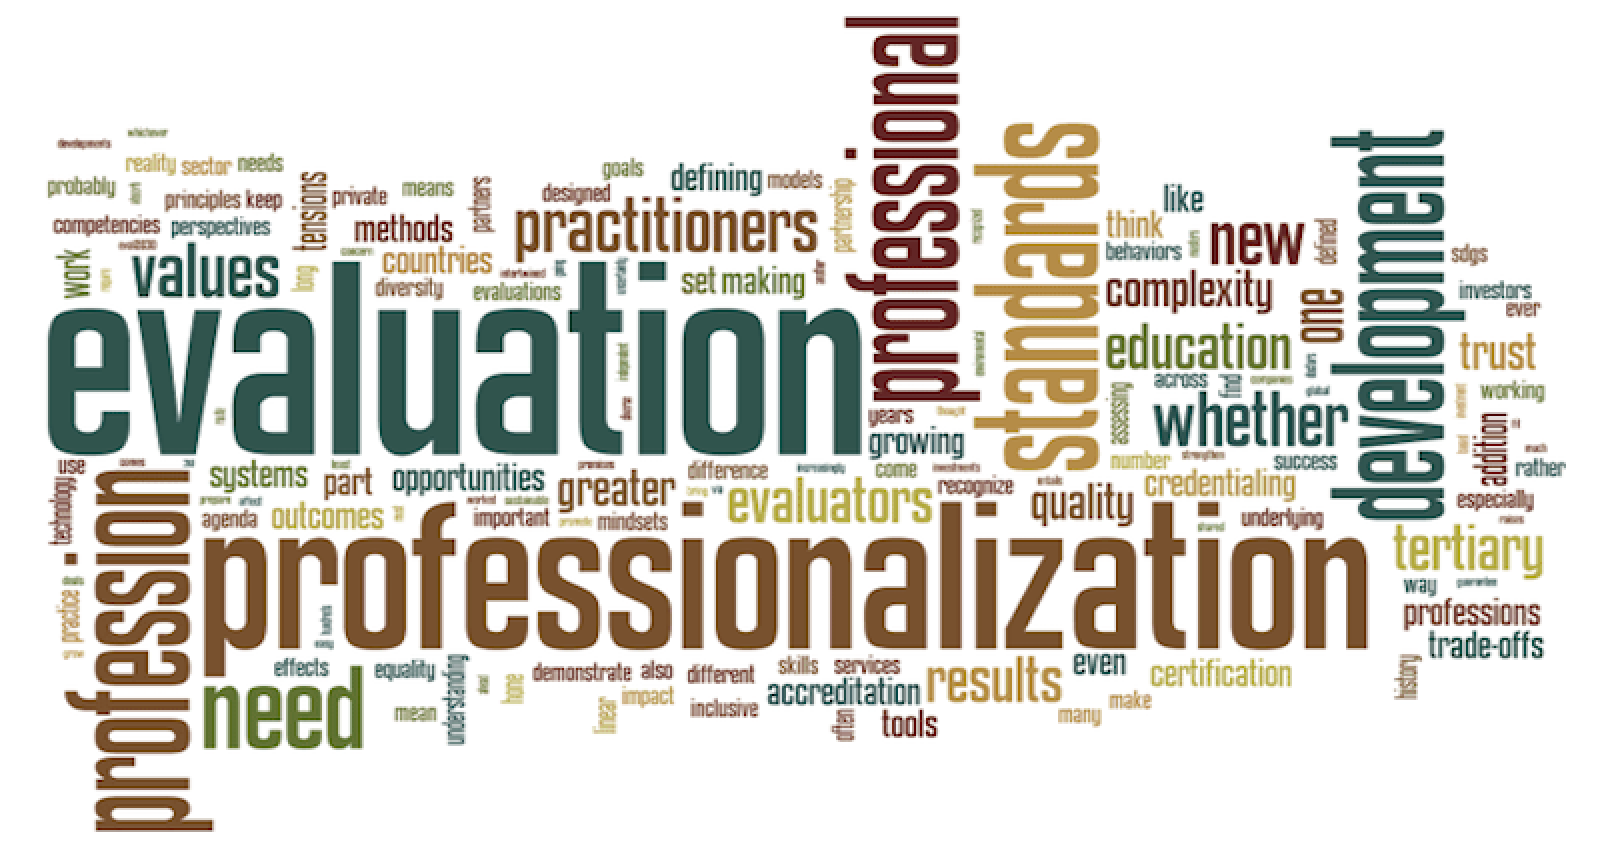 Professionalization With a View to Eval2030